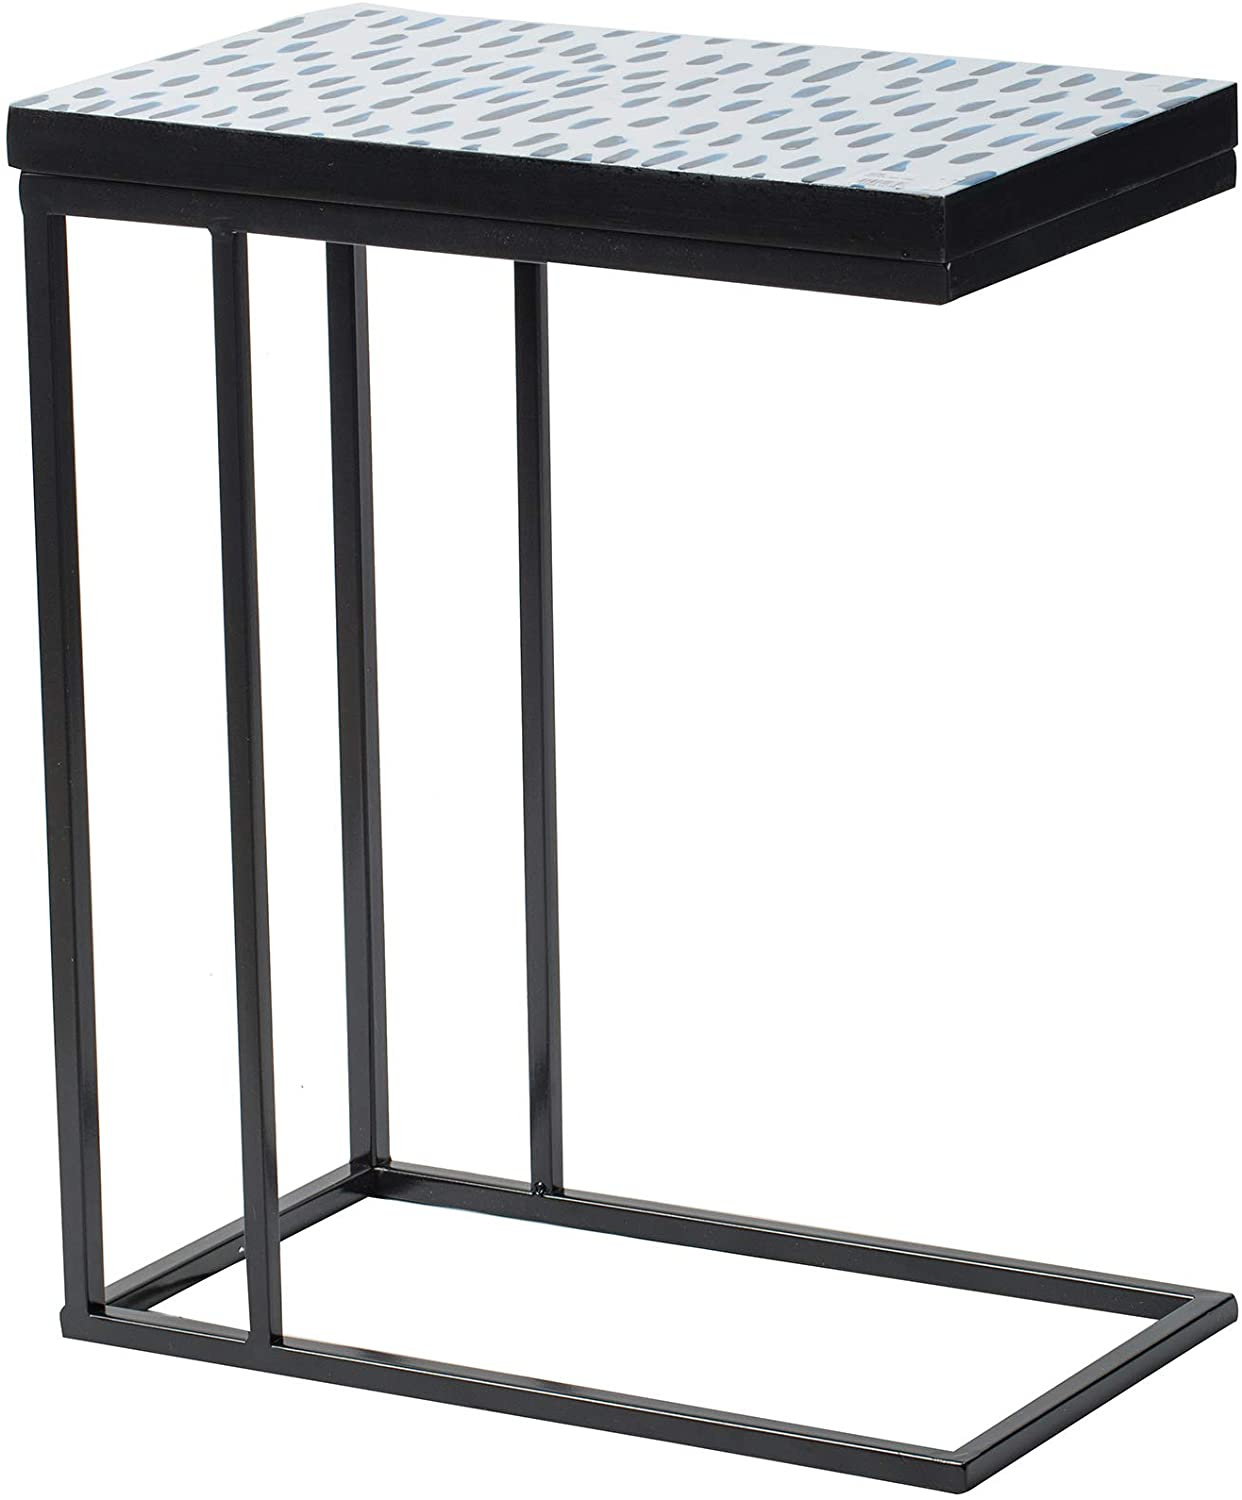 A&B Home Side Tables, Black, Indego